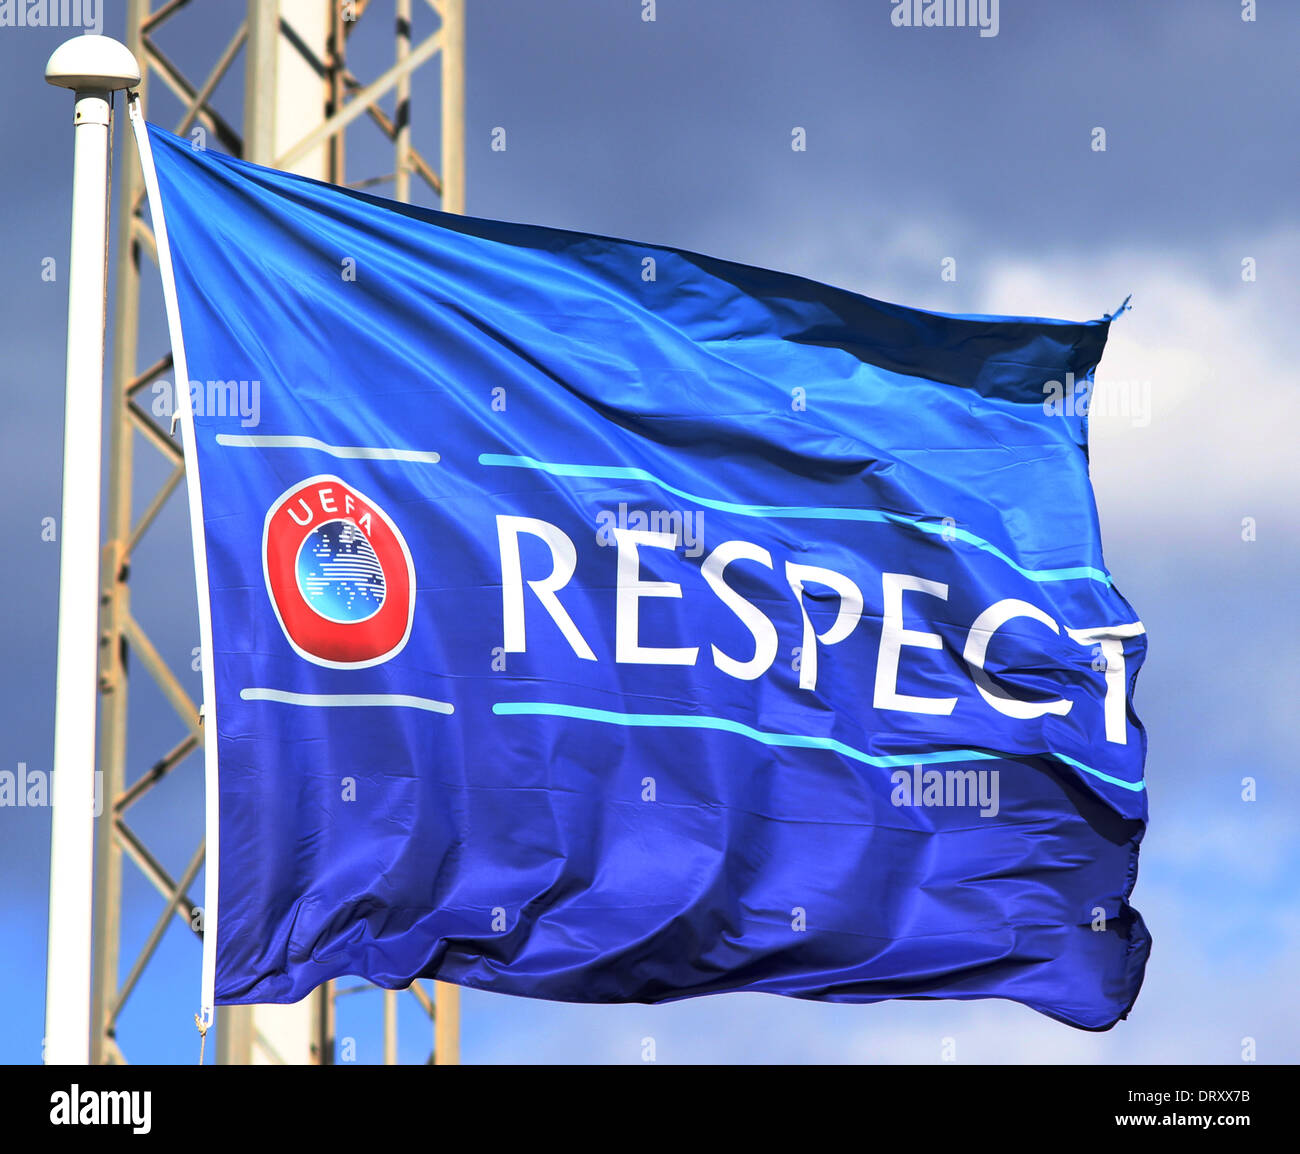 UEFA Respect Campaign Flag - Stock Image